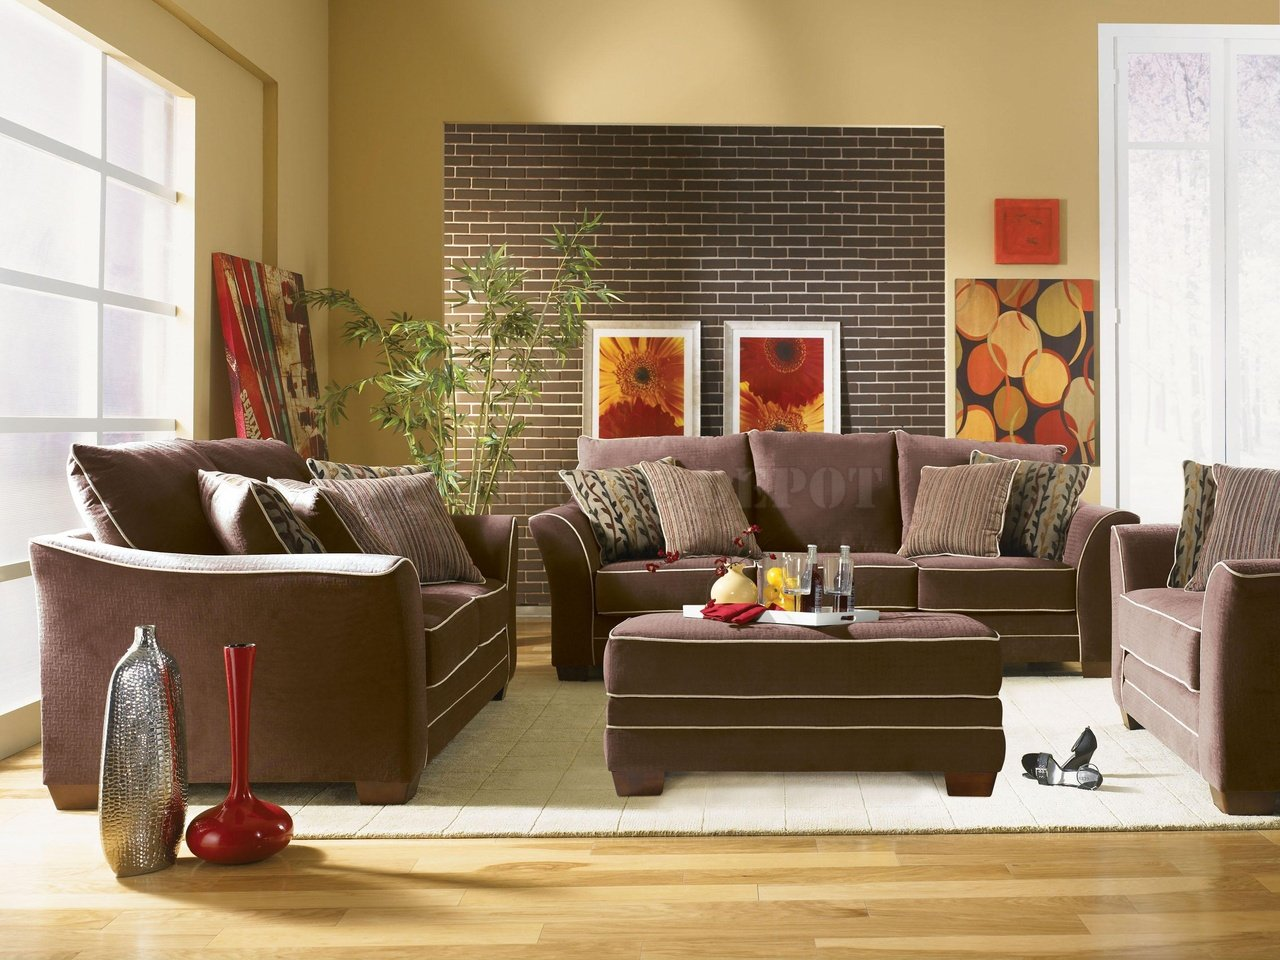 Interior design ideas interior designs home design ideas for Living room furniture designs